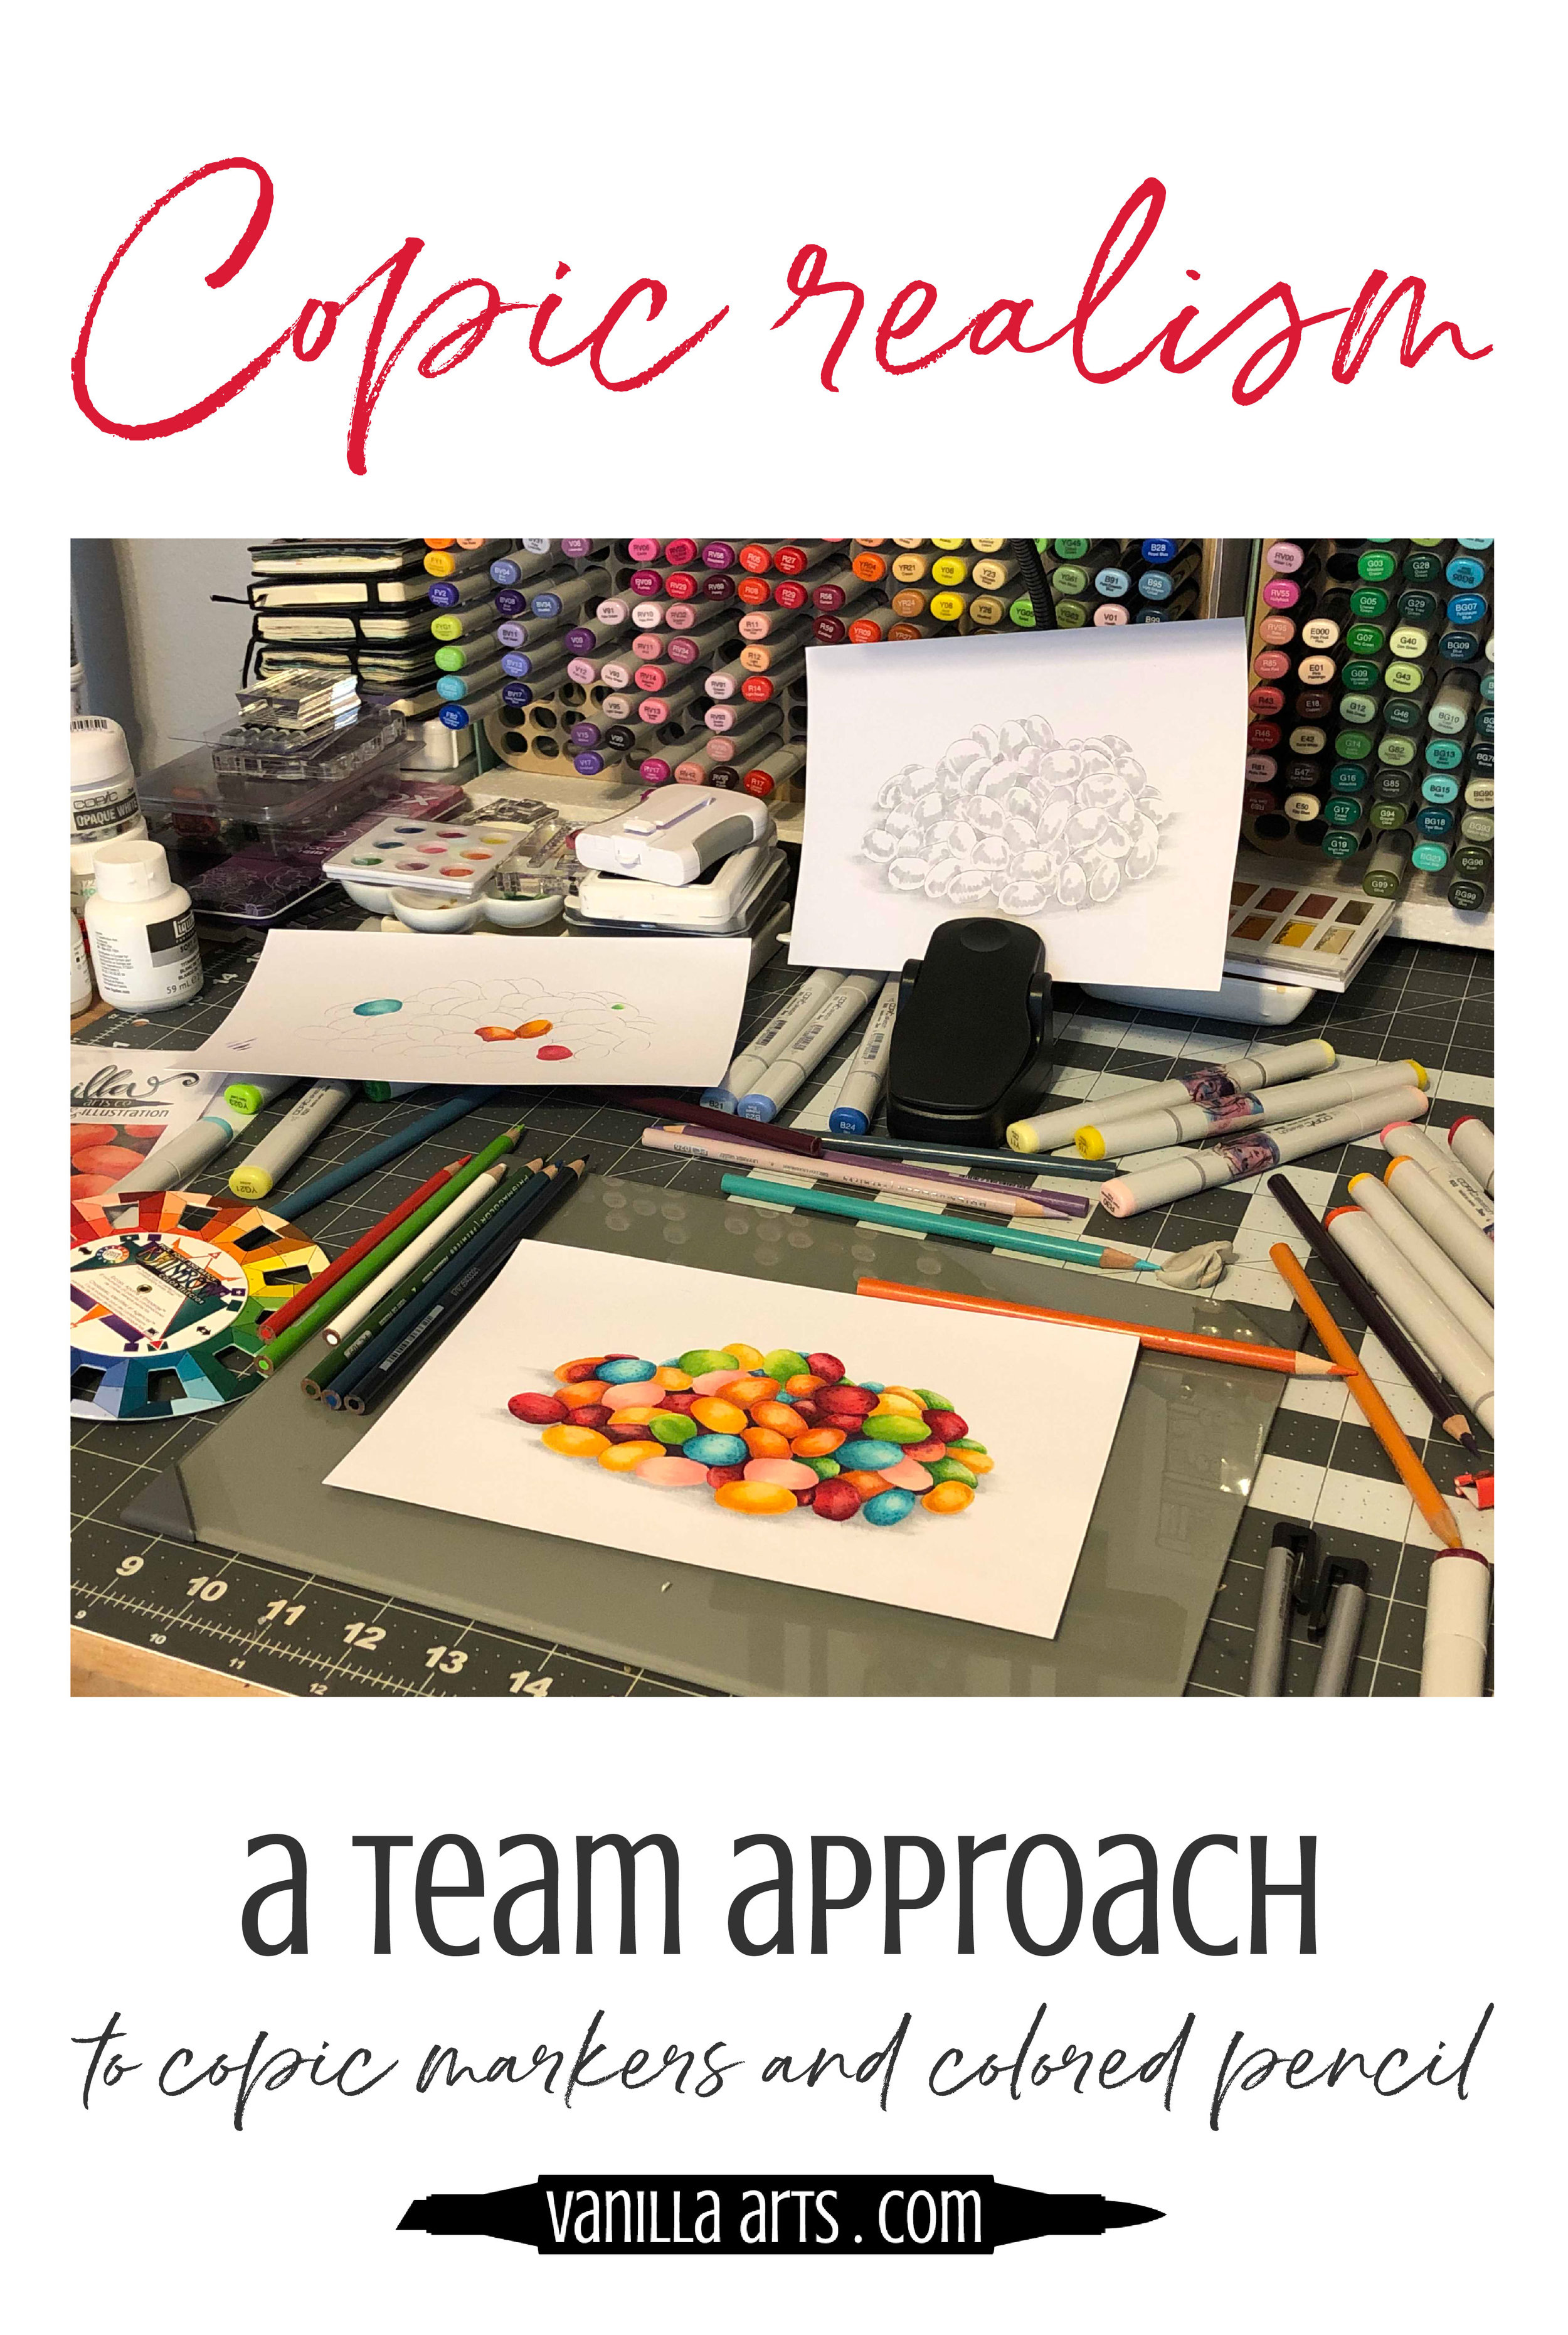 Color realistic Jellybeans with Copic Markers and colored pencils. Frankie and Pam from VanillaArts.com share their tips for coloring without a recipe or class. | VanillaArts.com | #copicmarker #coloredpencil #realisticcoloring